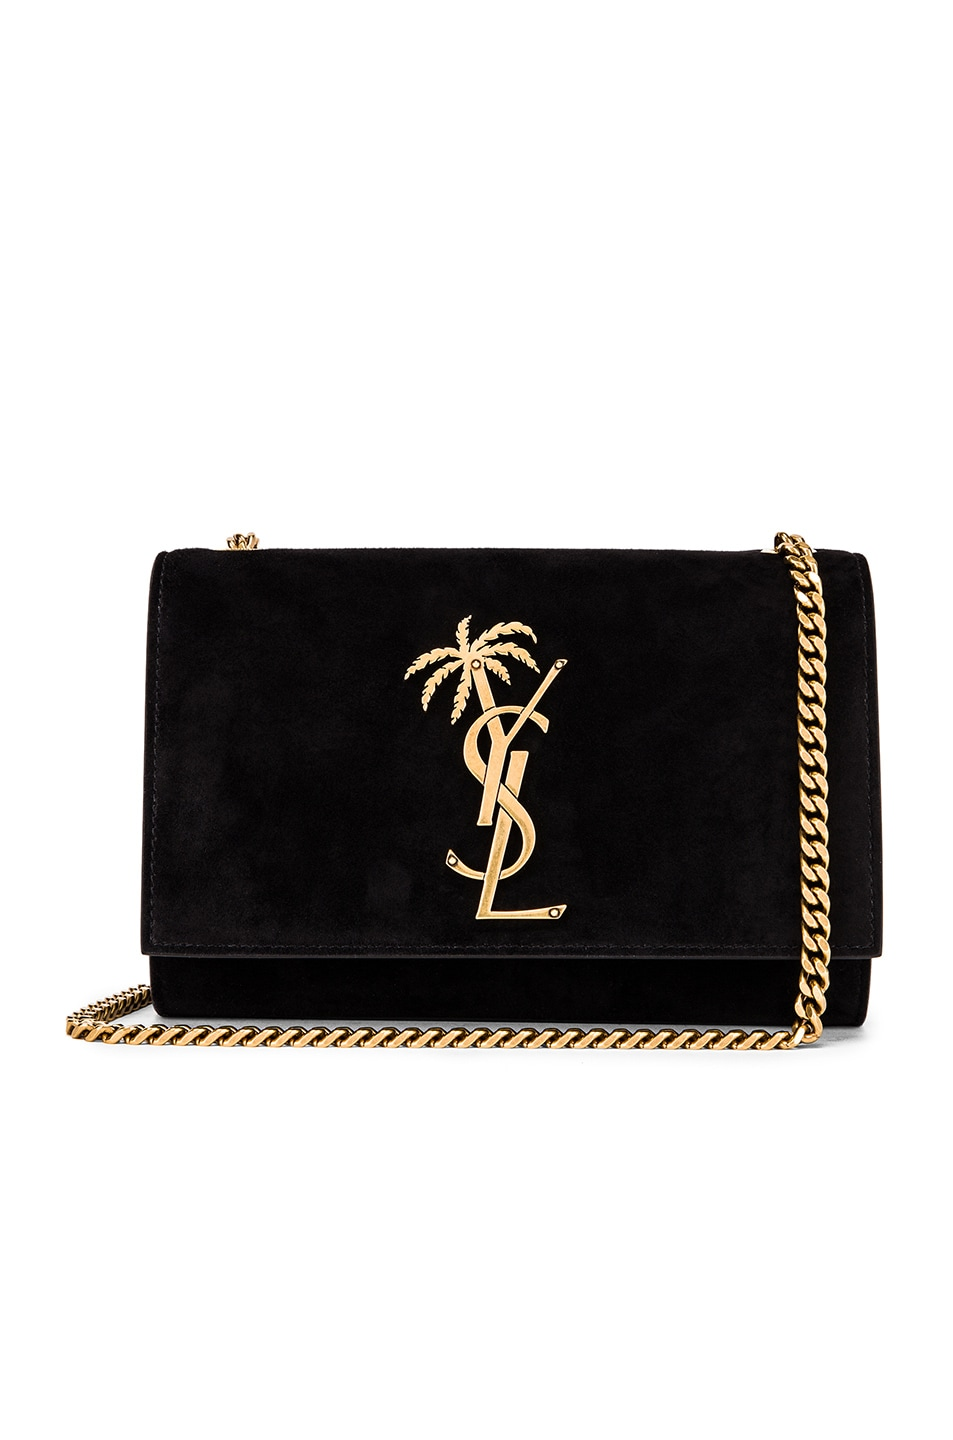 Image 1 of Saint Laurent Small Monogramme Kate Bag in Black